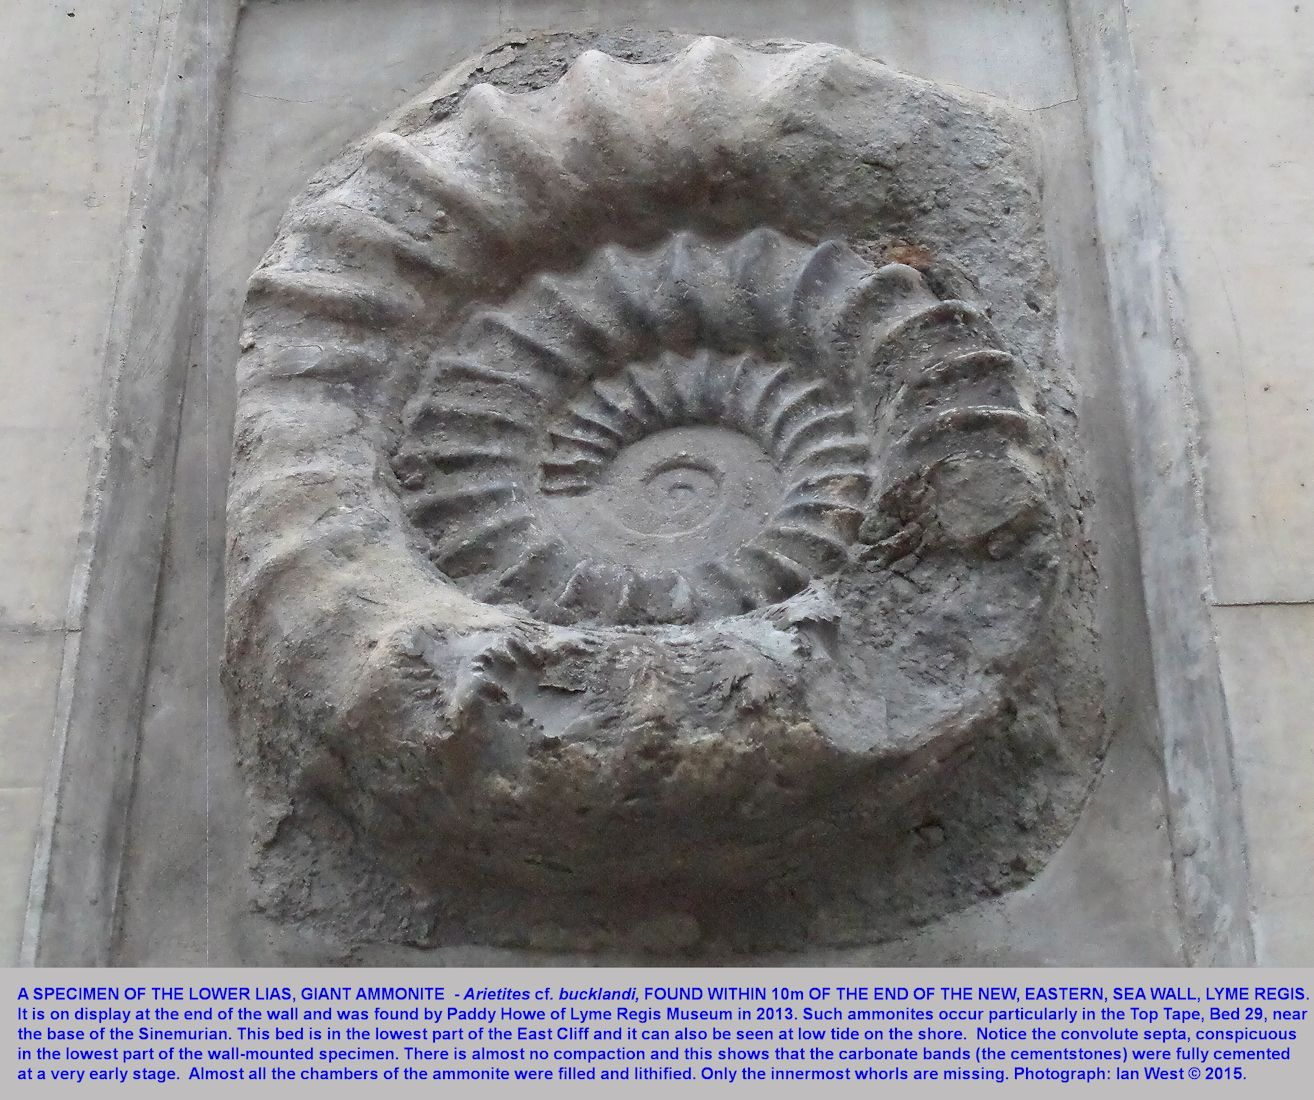 A prepared specimen of the giant ammonite, Arietites cf. bucklandi, on display in a wall at the end of the new, eastern sea defences, Lyme Regis, Dorset, June 2015